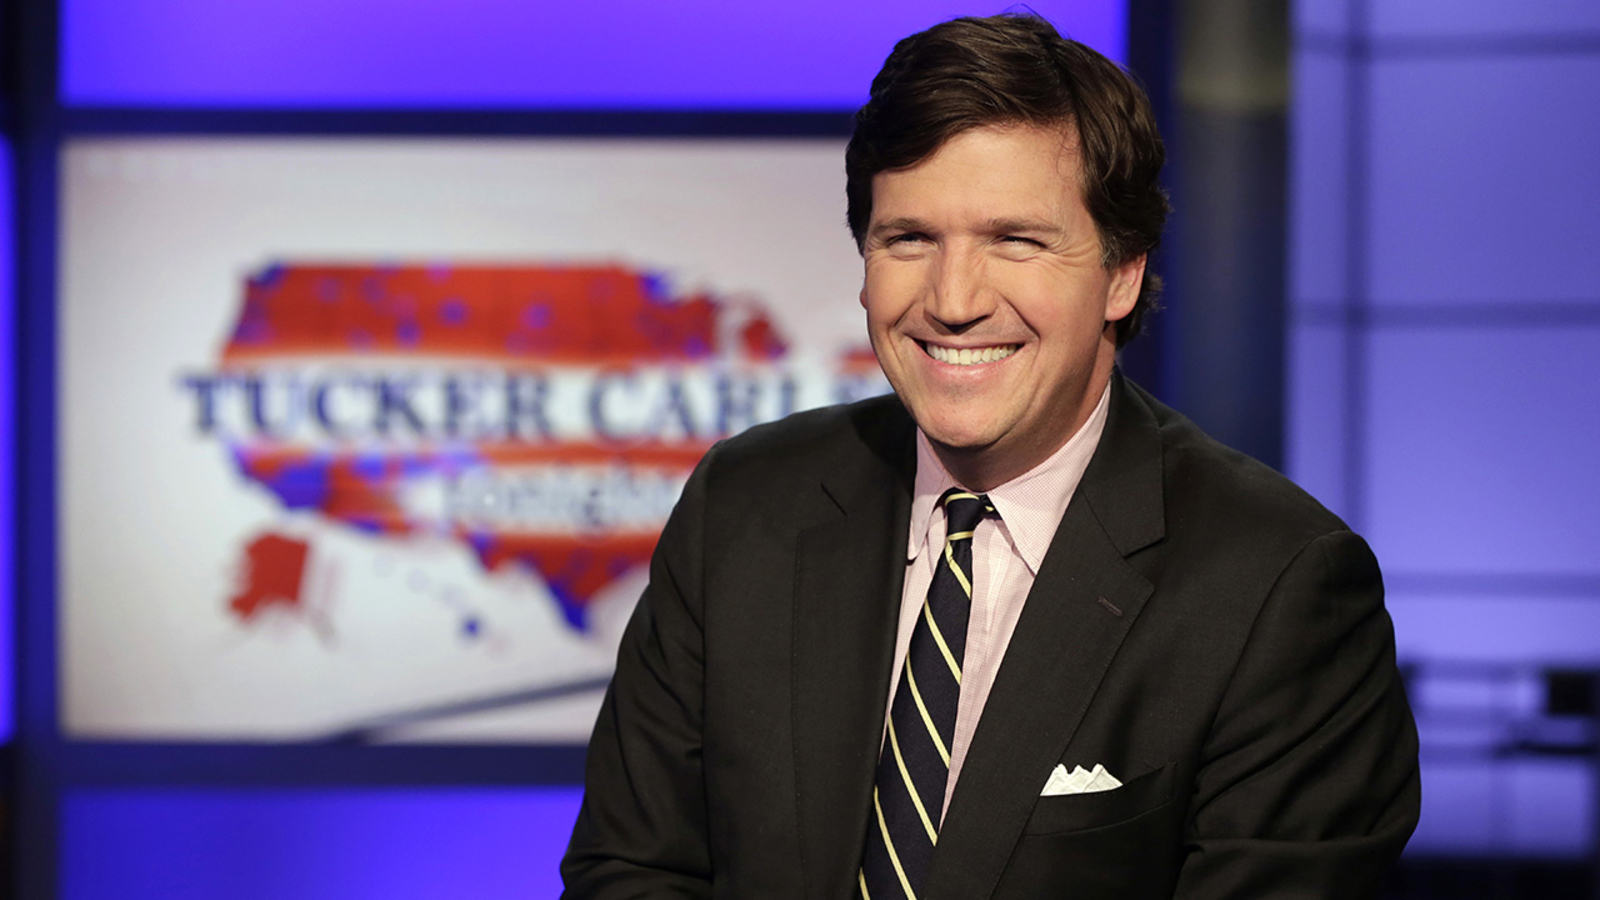 Tucker: Media hates Trump with an all-consuming mania